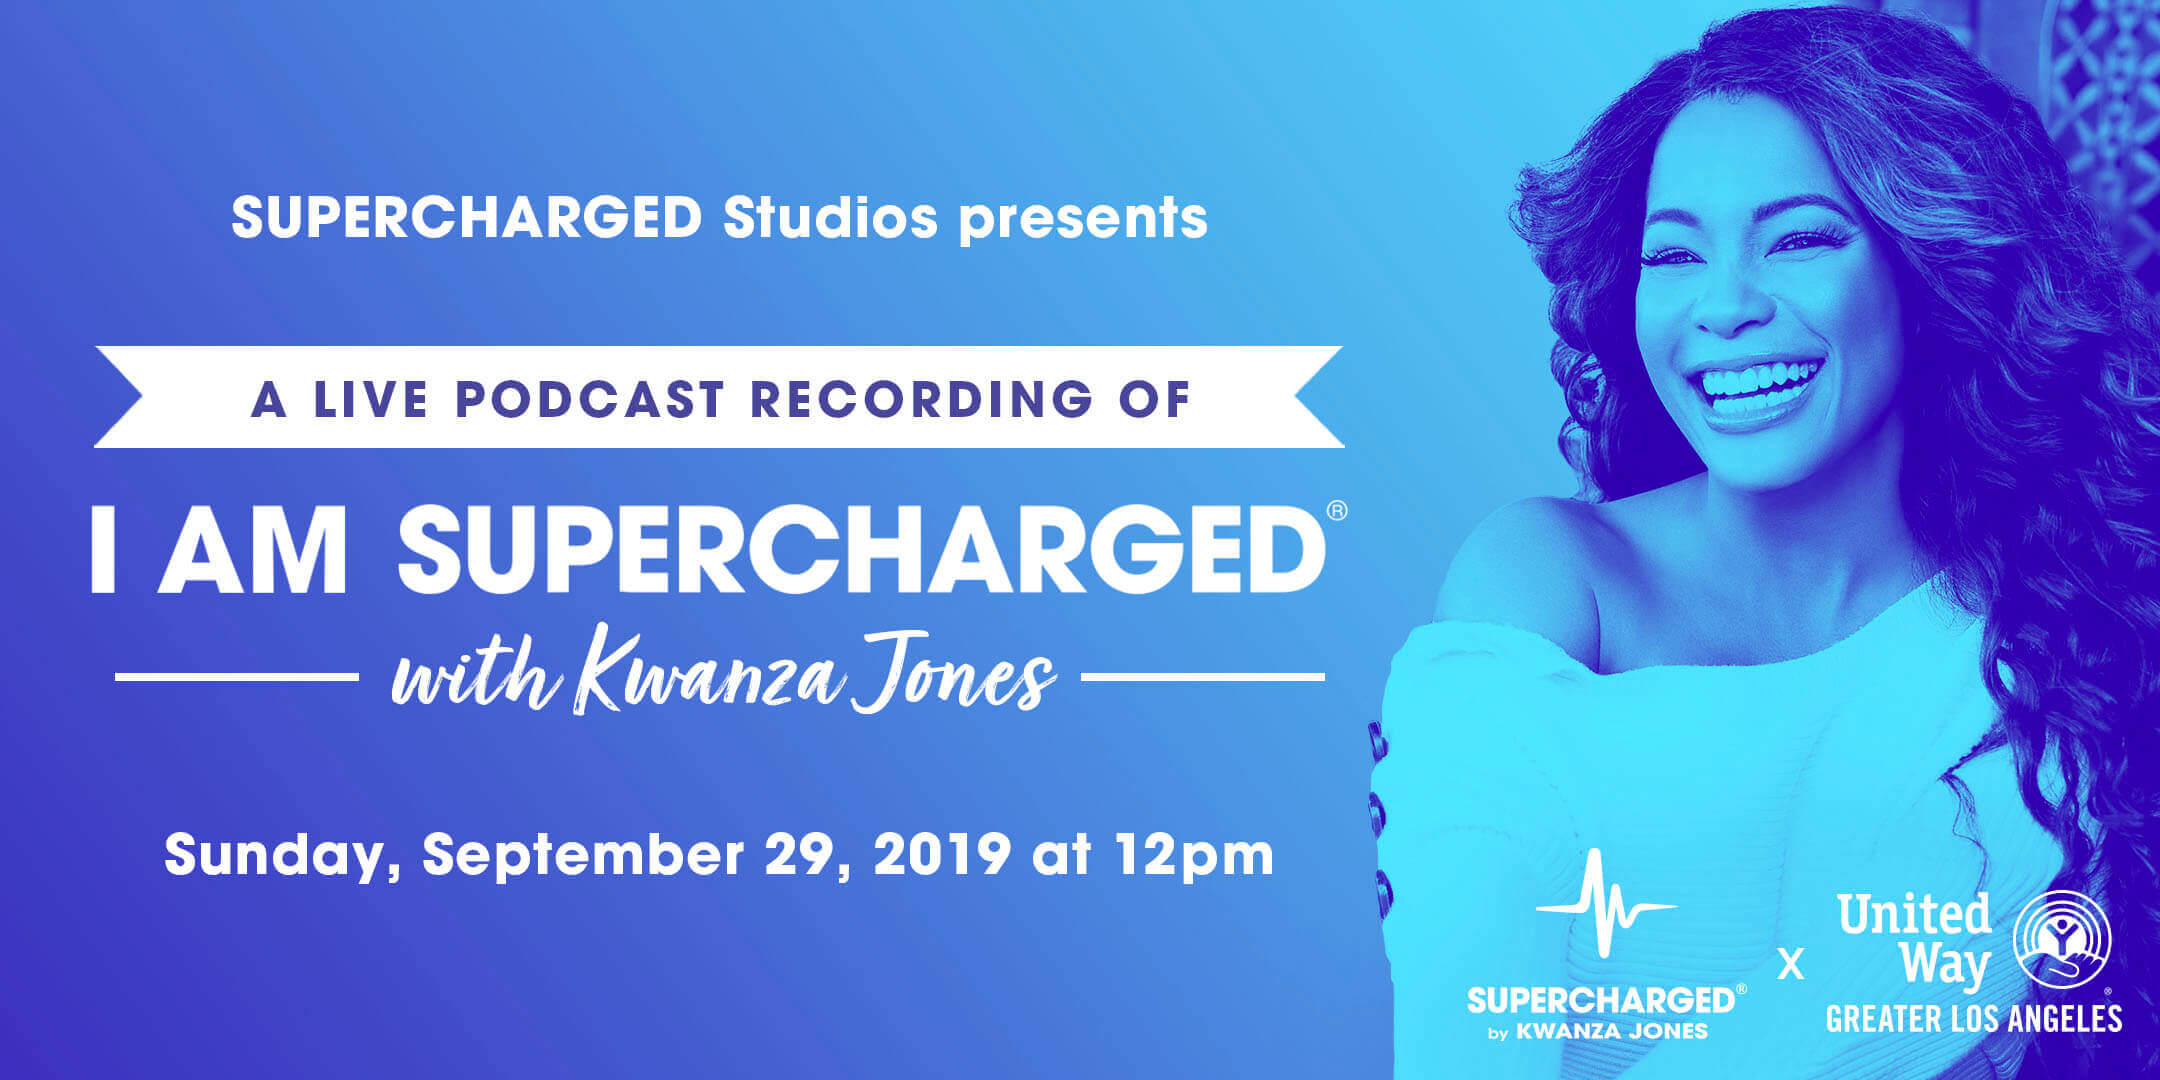 Live Podcast Recording of I AM SUPERCHARGED with Kwanza Jones